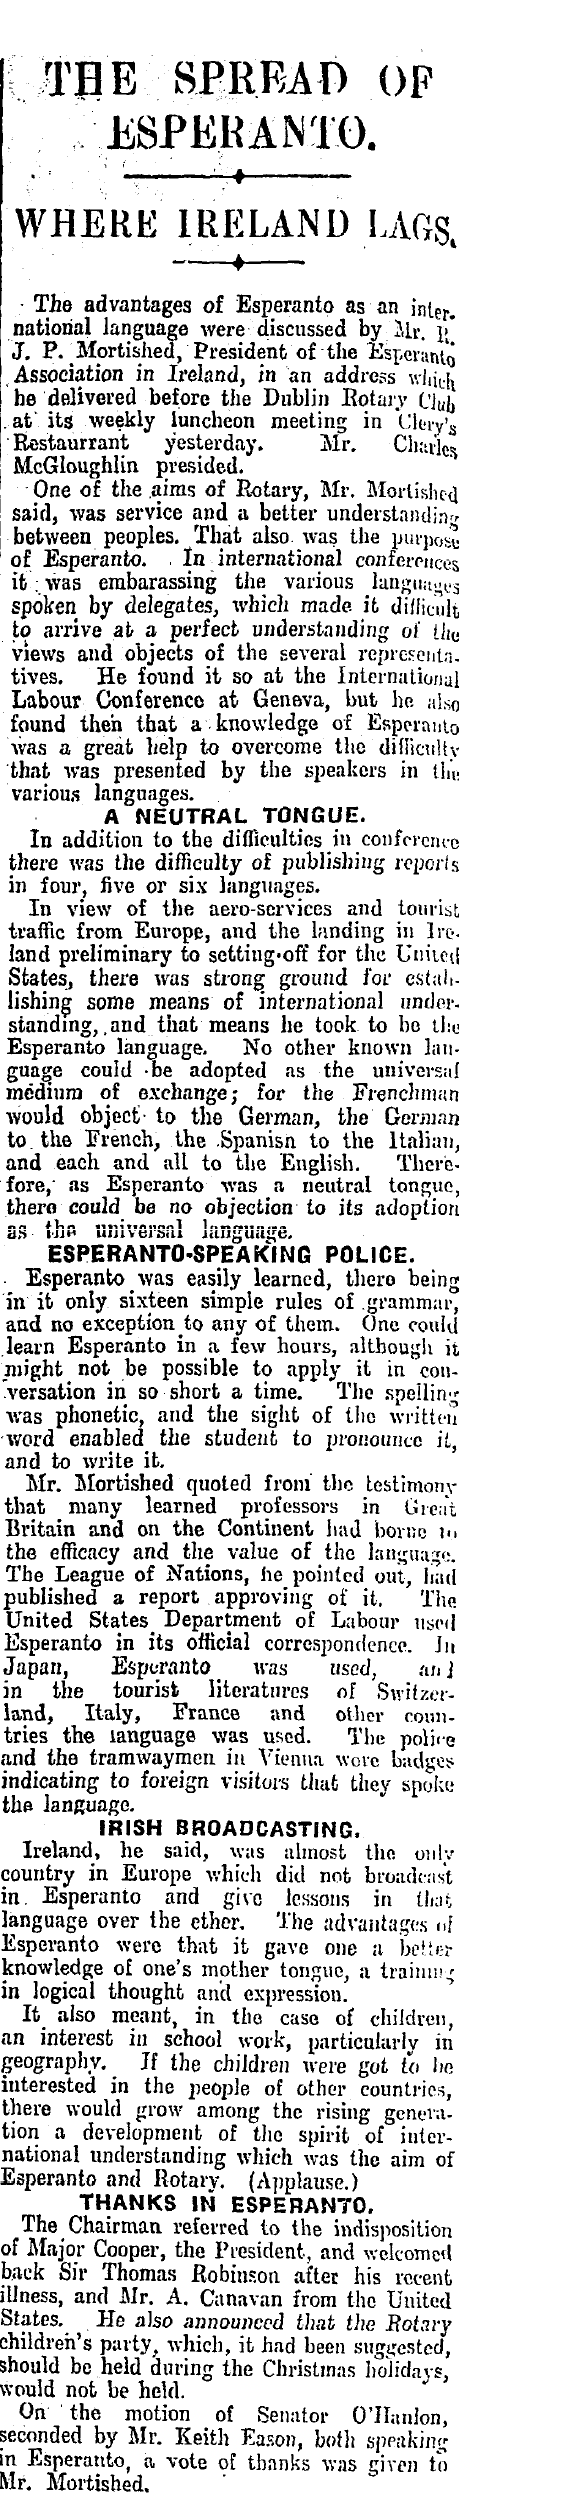 Irish Times 3rd of January 1928